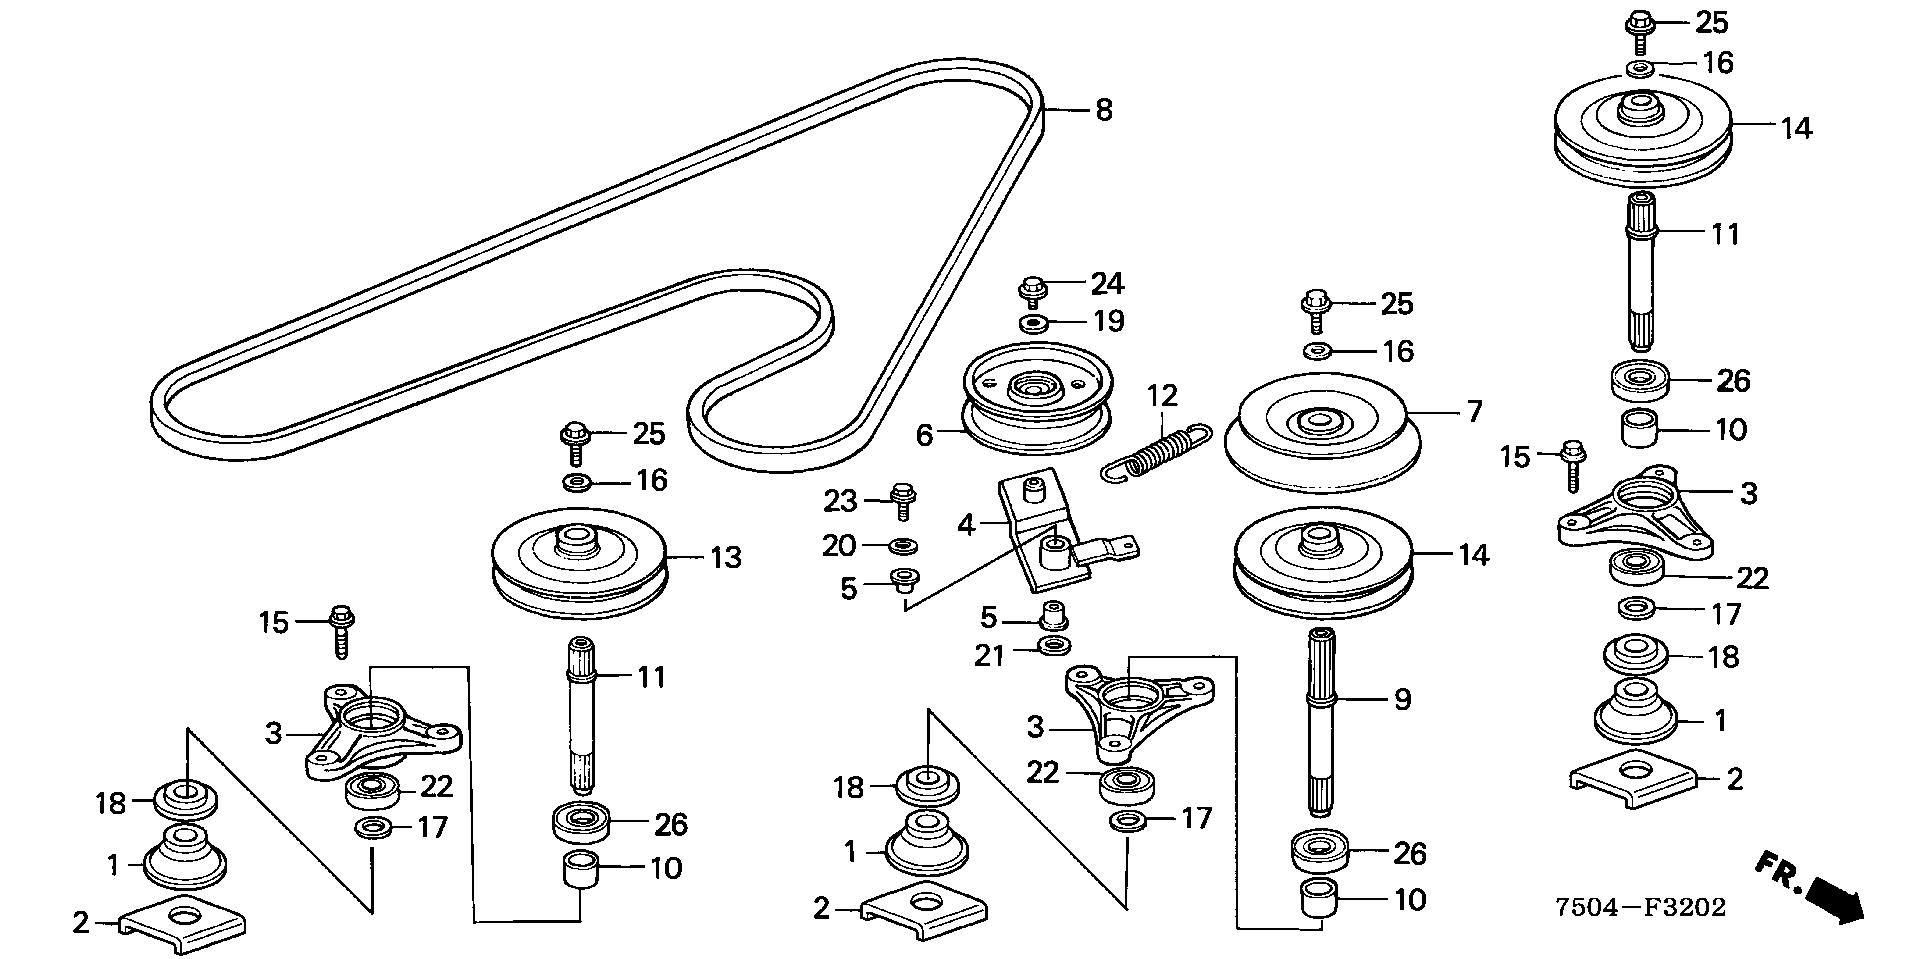 BLADE SHAFT@DRIVEN PULLEY (HT4213)